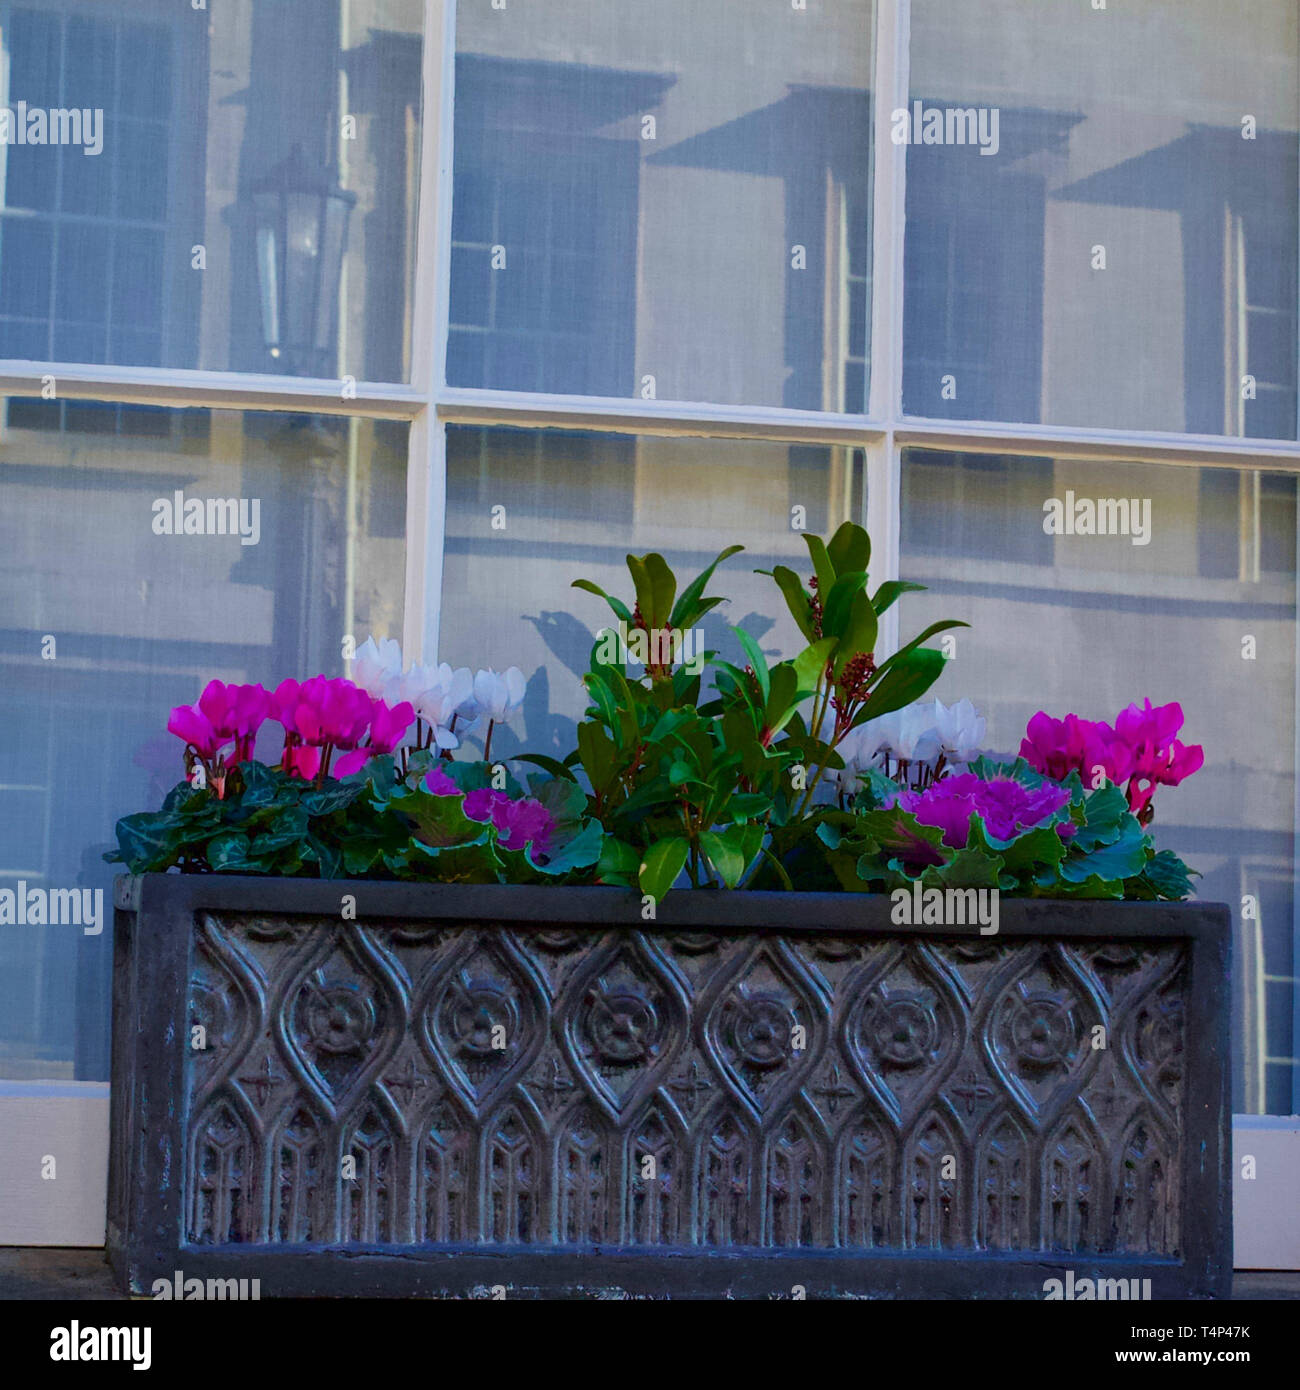 Potted flowers in a window box. - Stock Image